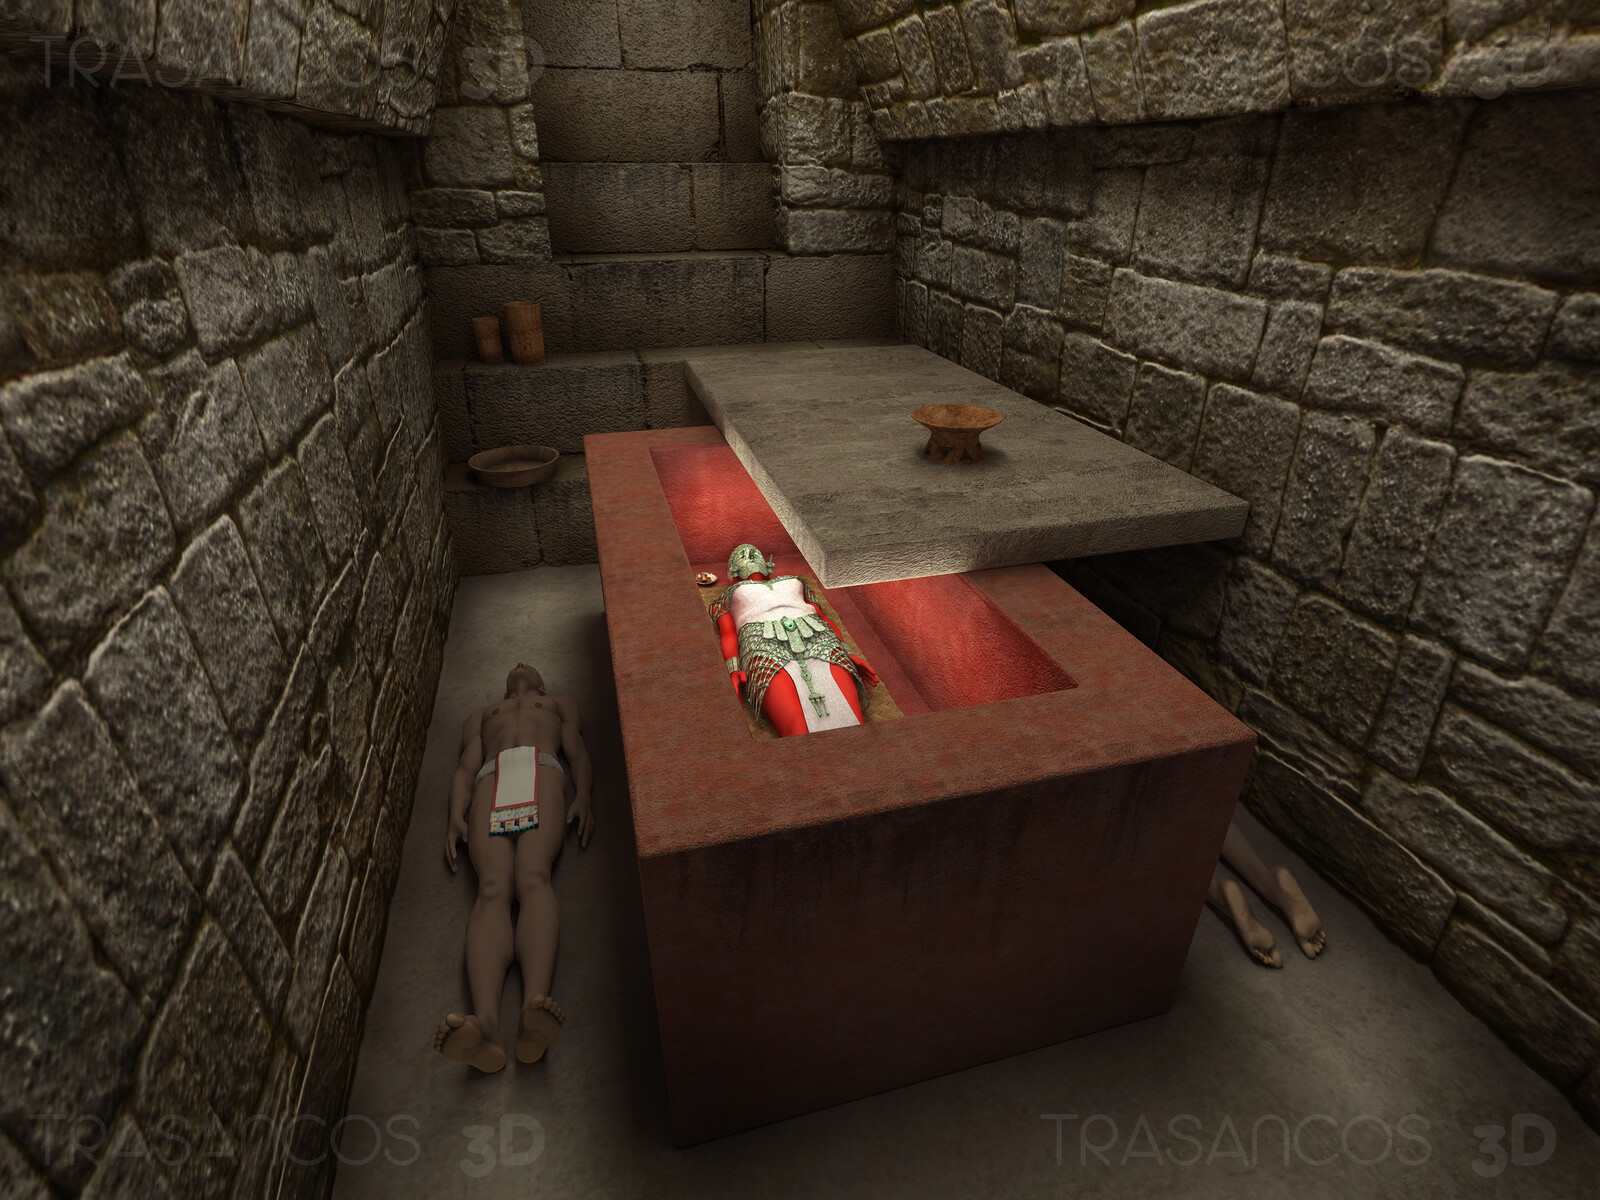 Reconstruction of the tomb of The Red Queen of Palenque.